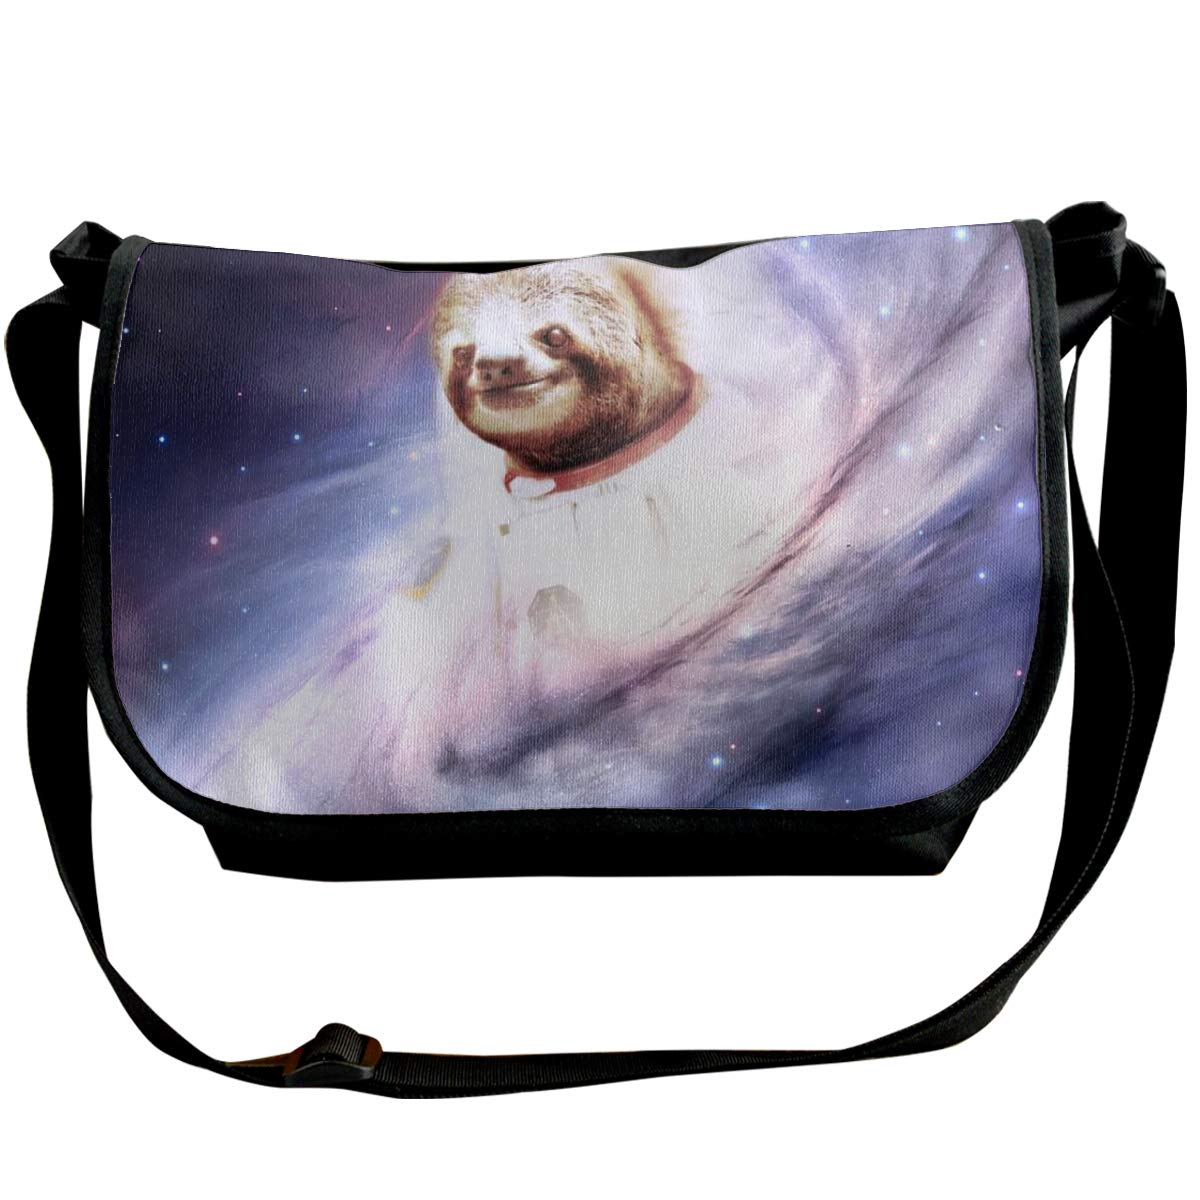 Futong Huaxia Astronaut Sloth Travel Messenger Bags Handbag Shoulder Bag Crossbody Bag Unisex